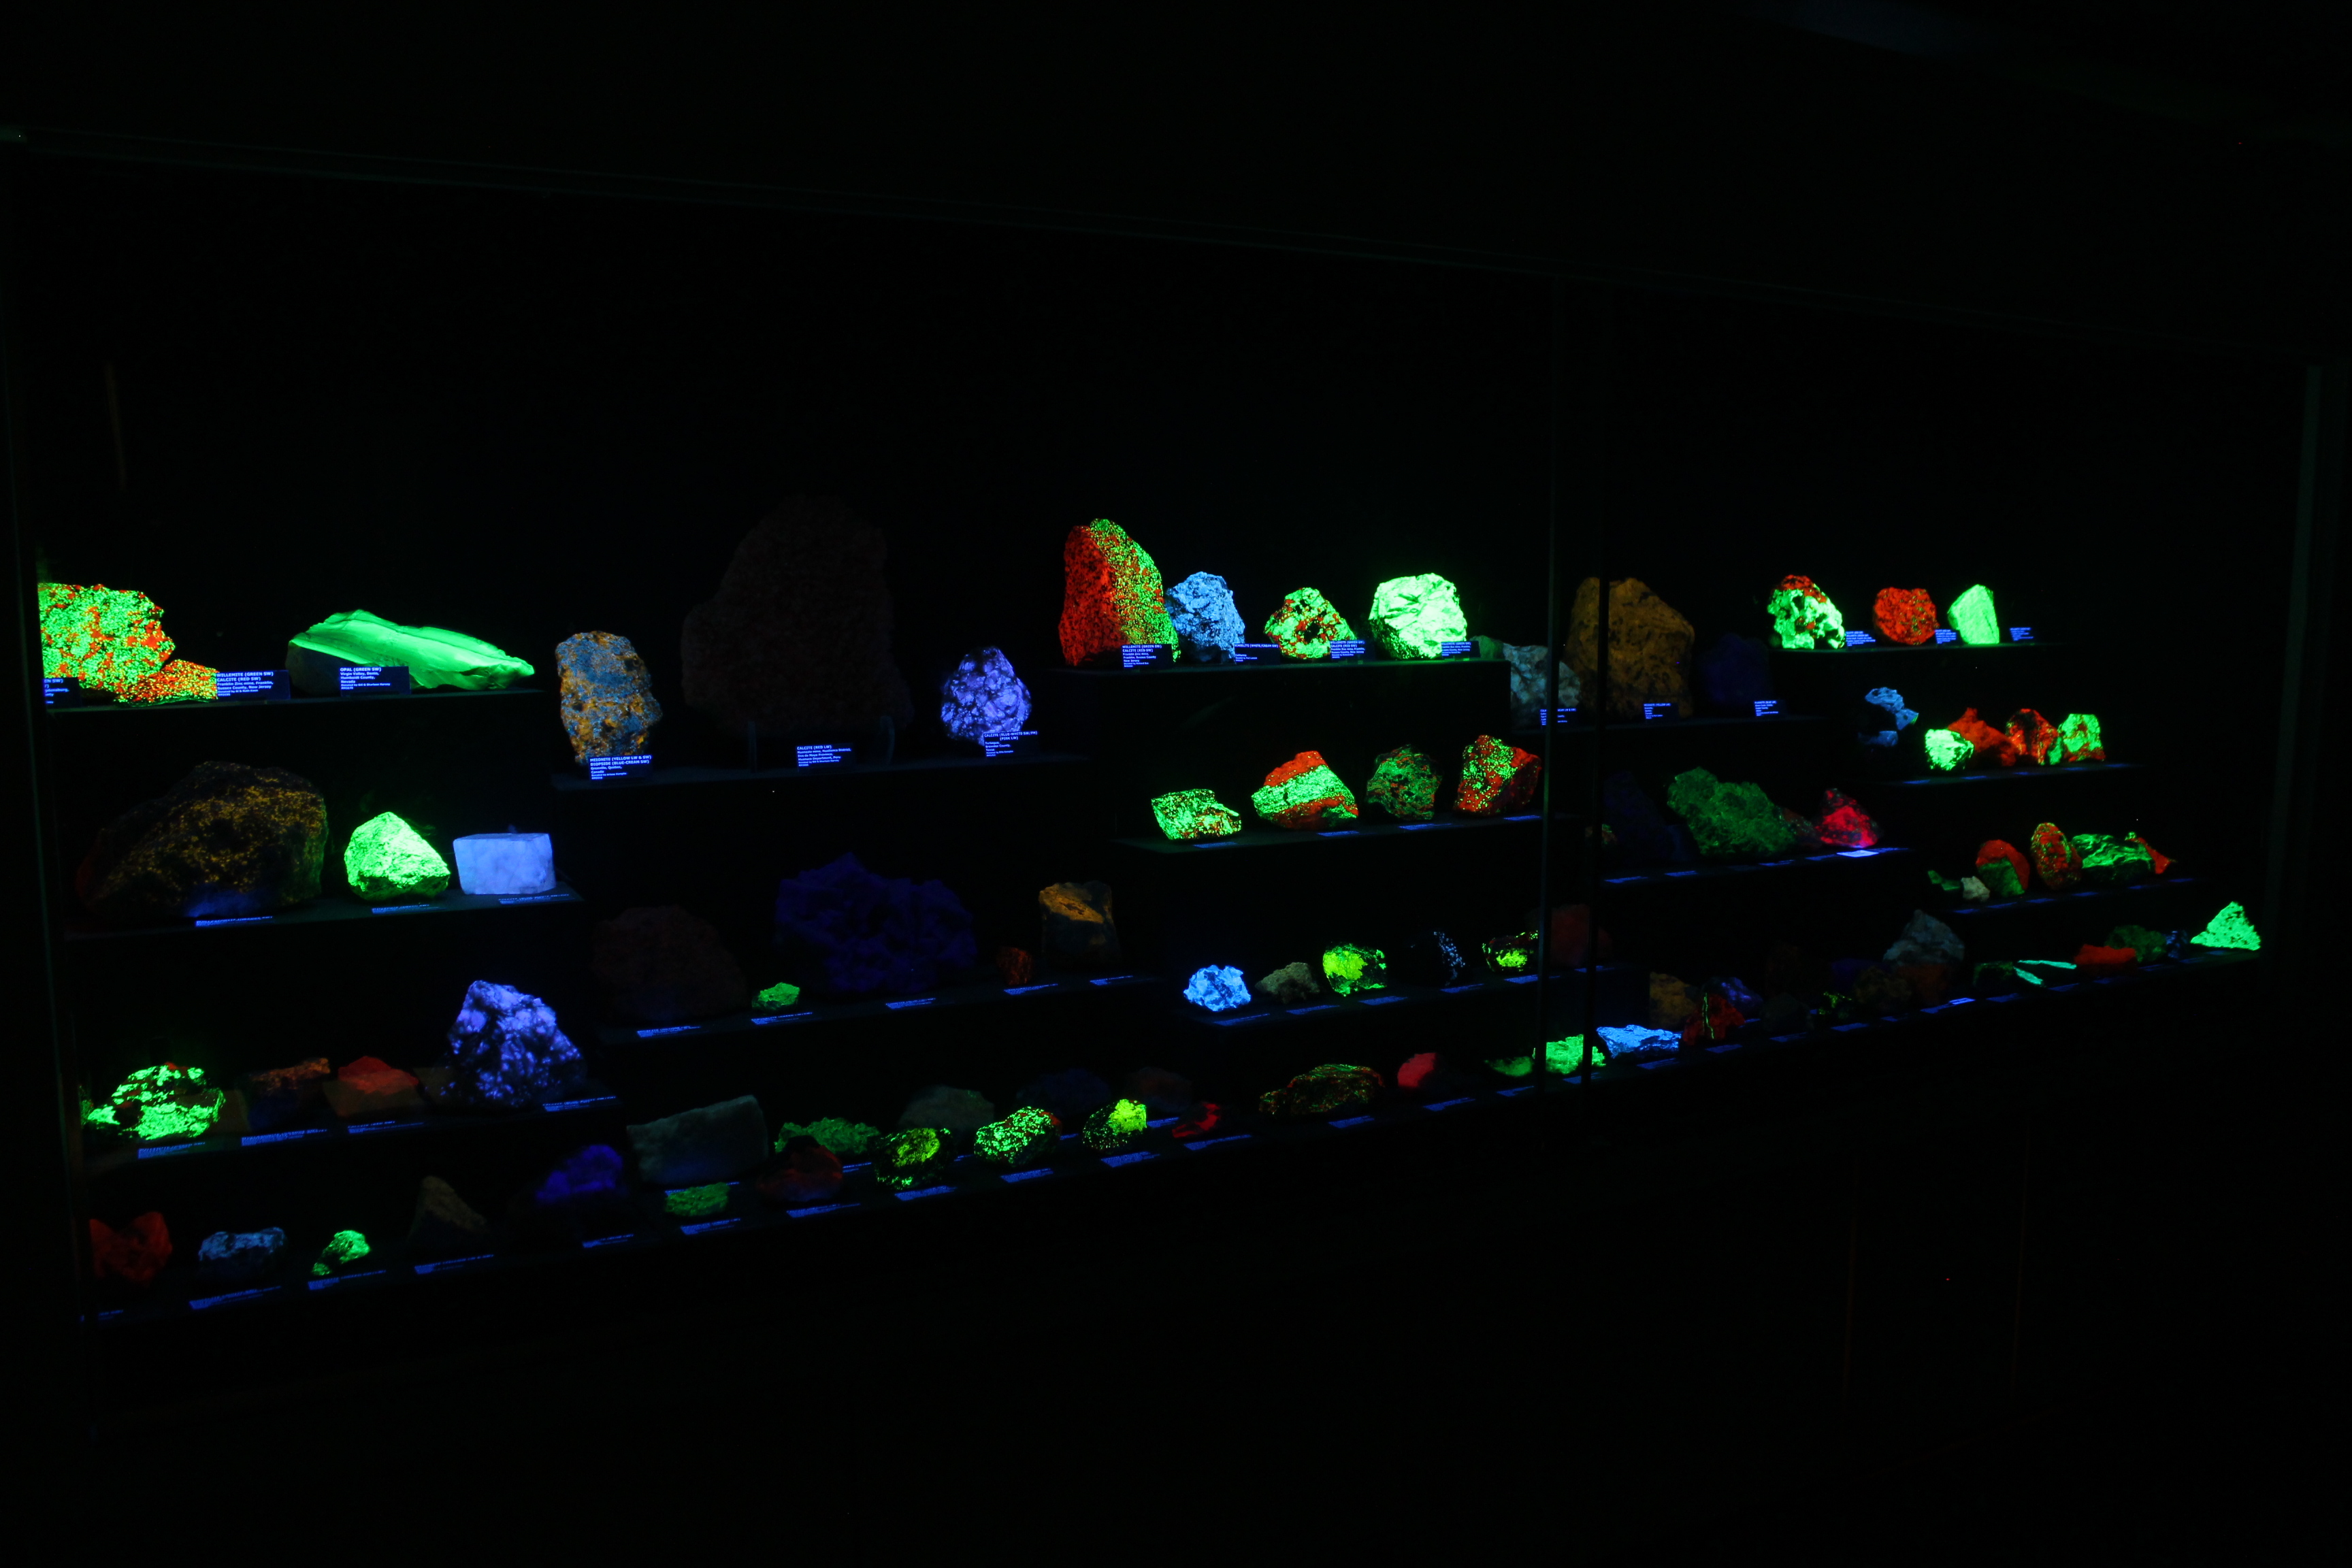 Fluorescent Mineral Display at the Rice Northwest Museum of Rocks and Minerals.